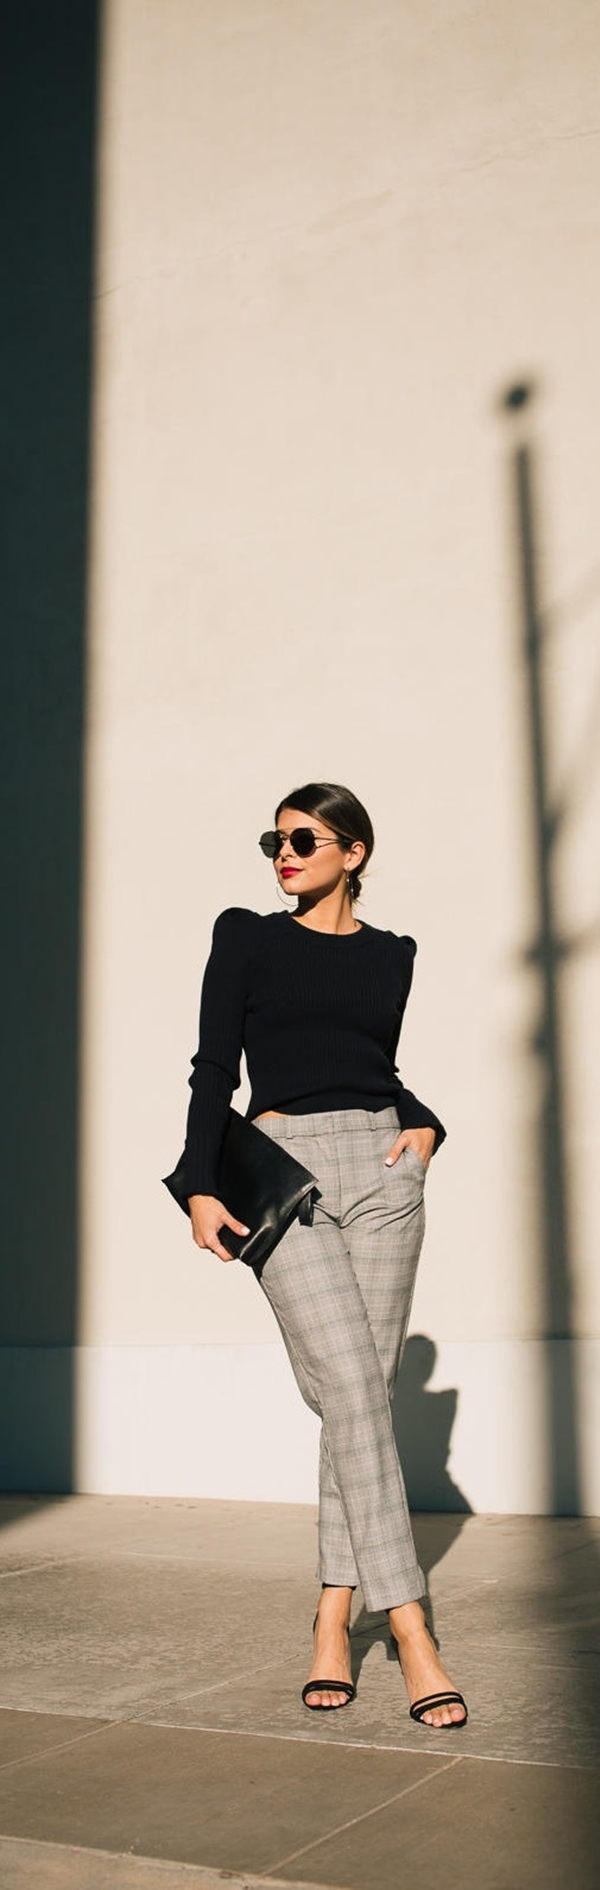 40 Complete Outfit Ideas for Skinny Girls to Look Gorgeous